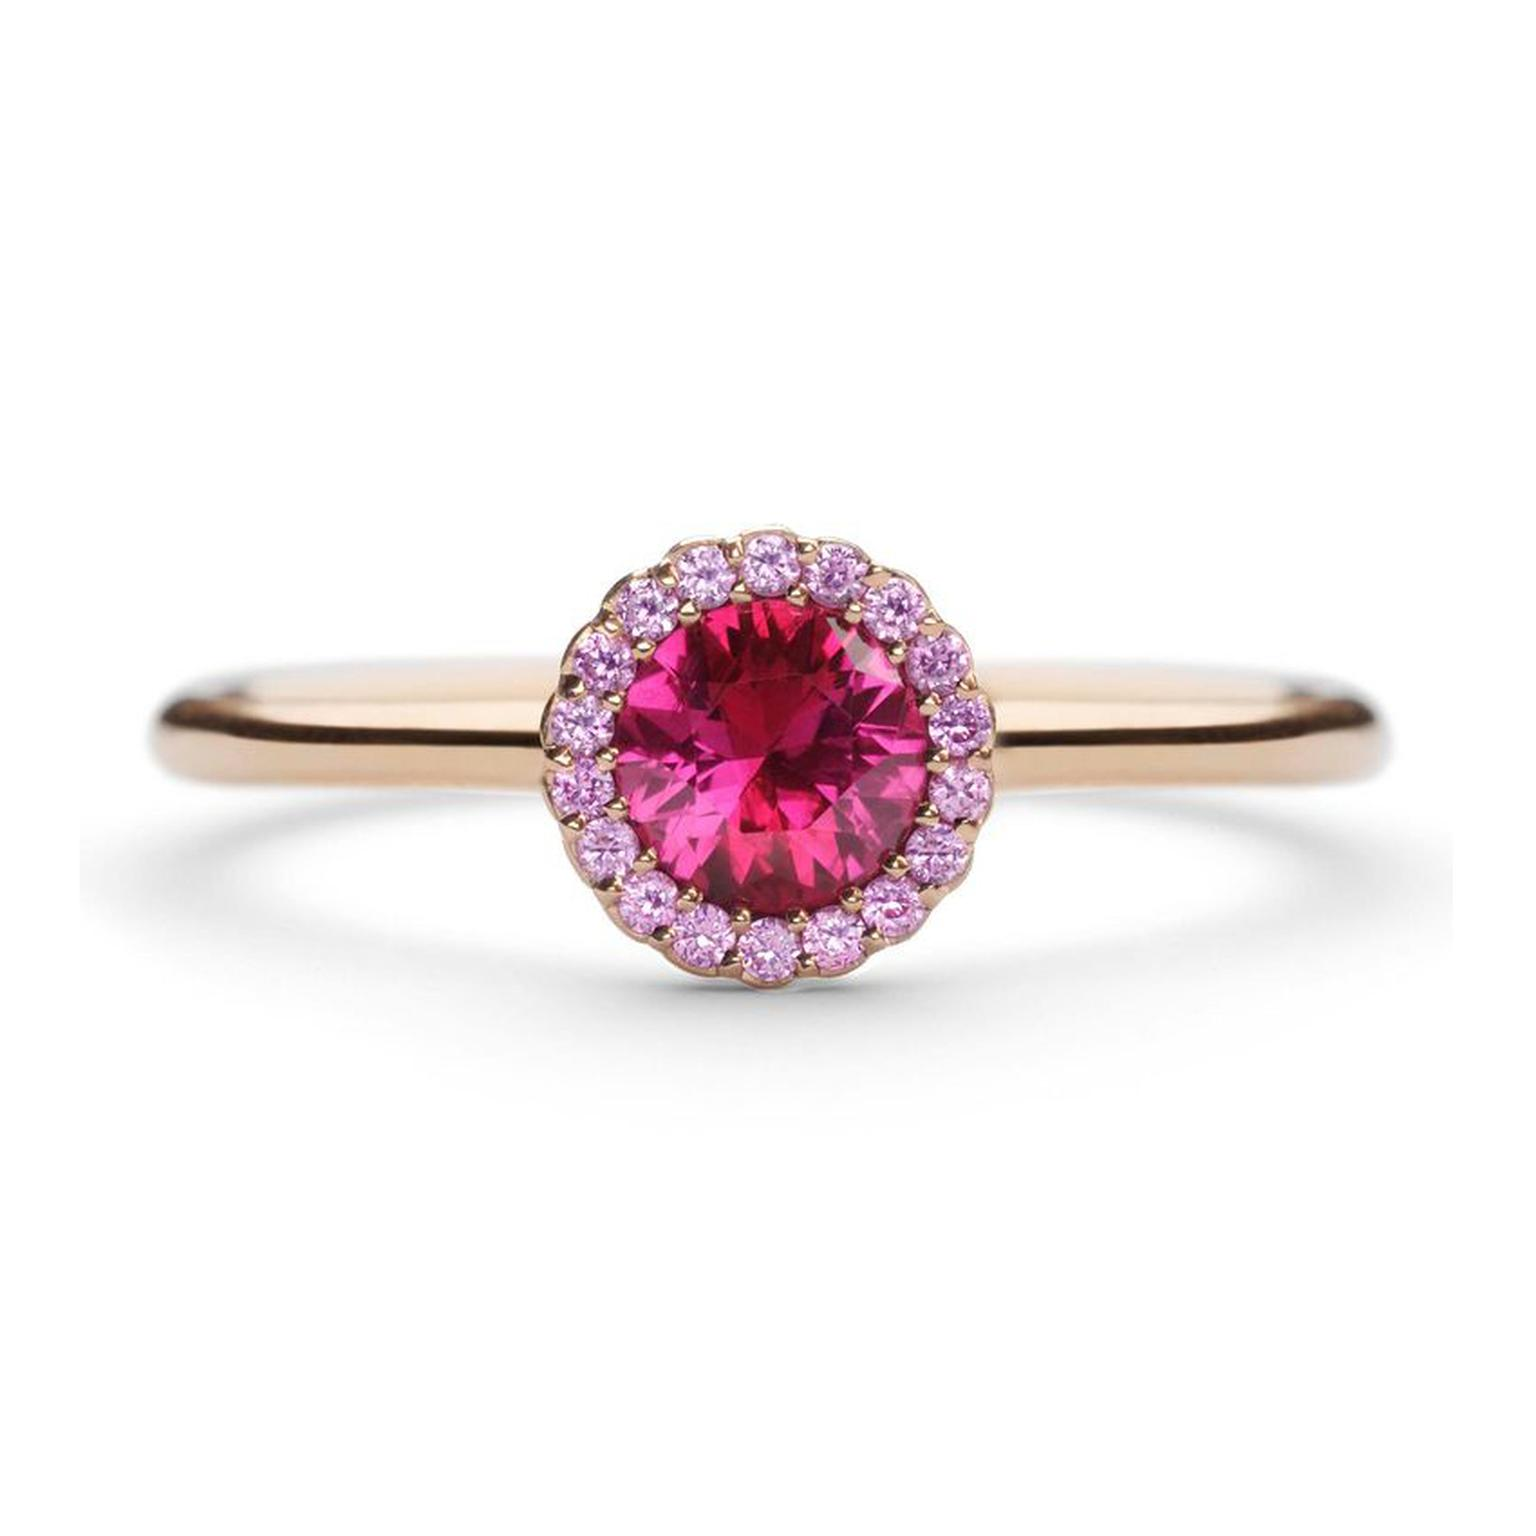 Andrew Geoghegan Cannelé engagement ring in rose gold with a brilliant-cut ruby encircled by pink sapphires.